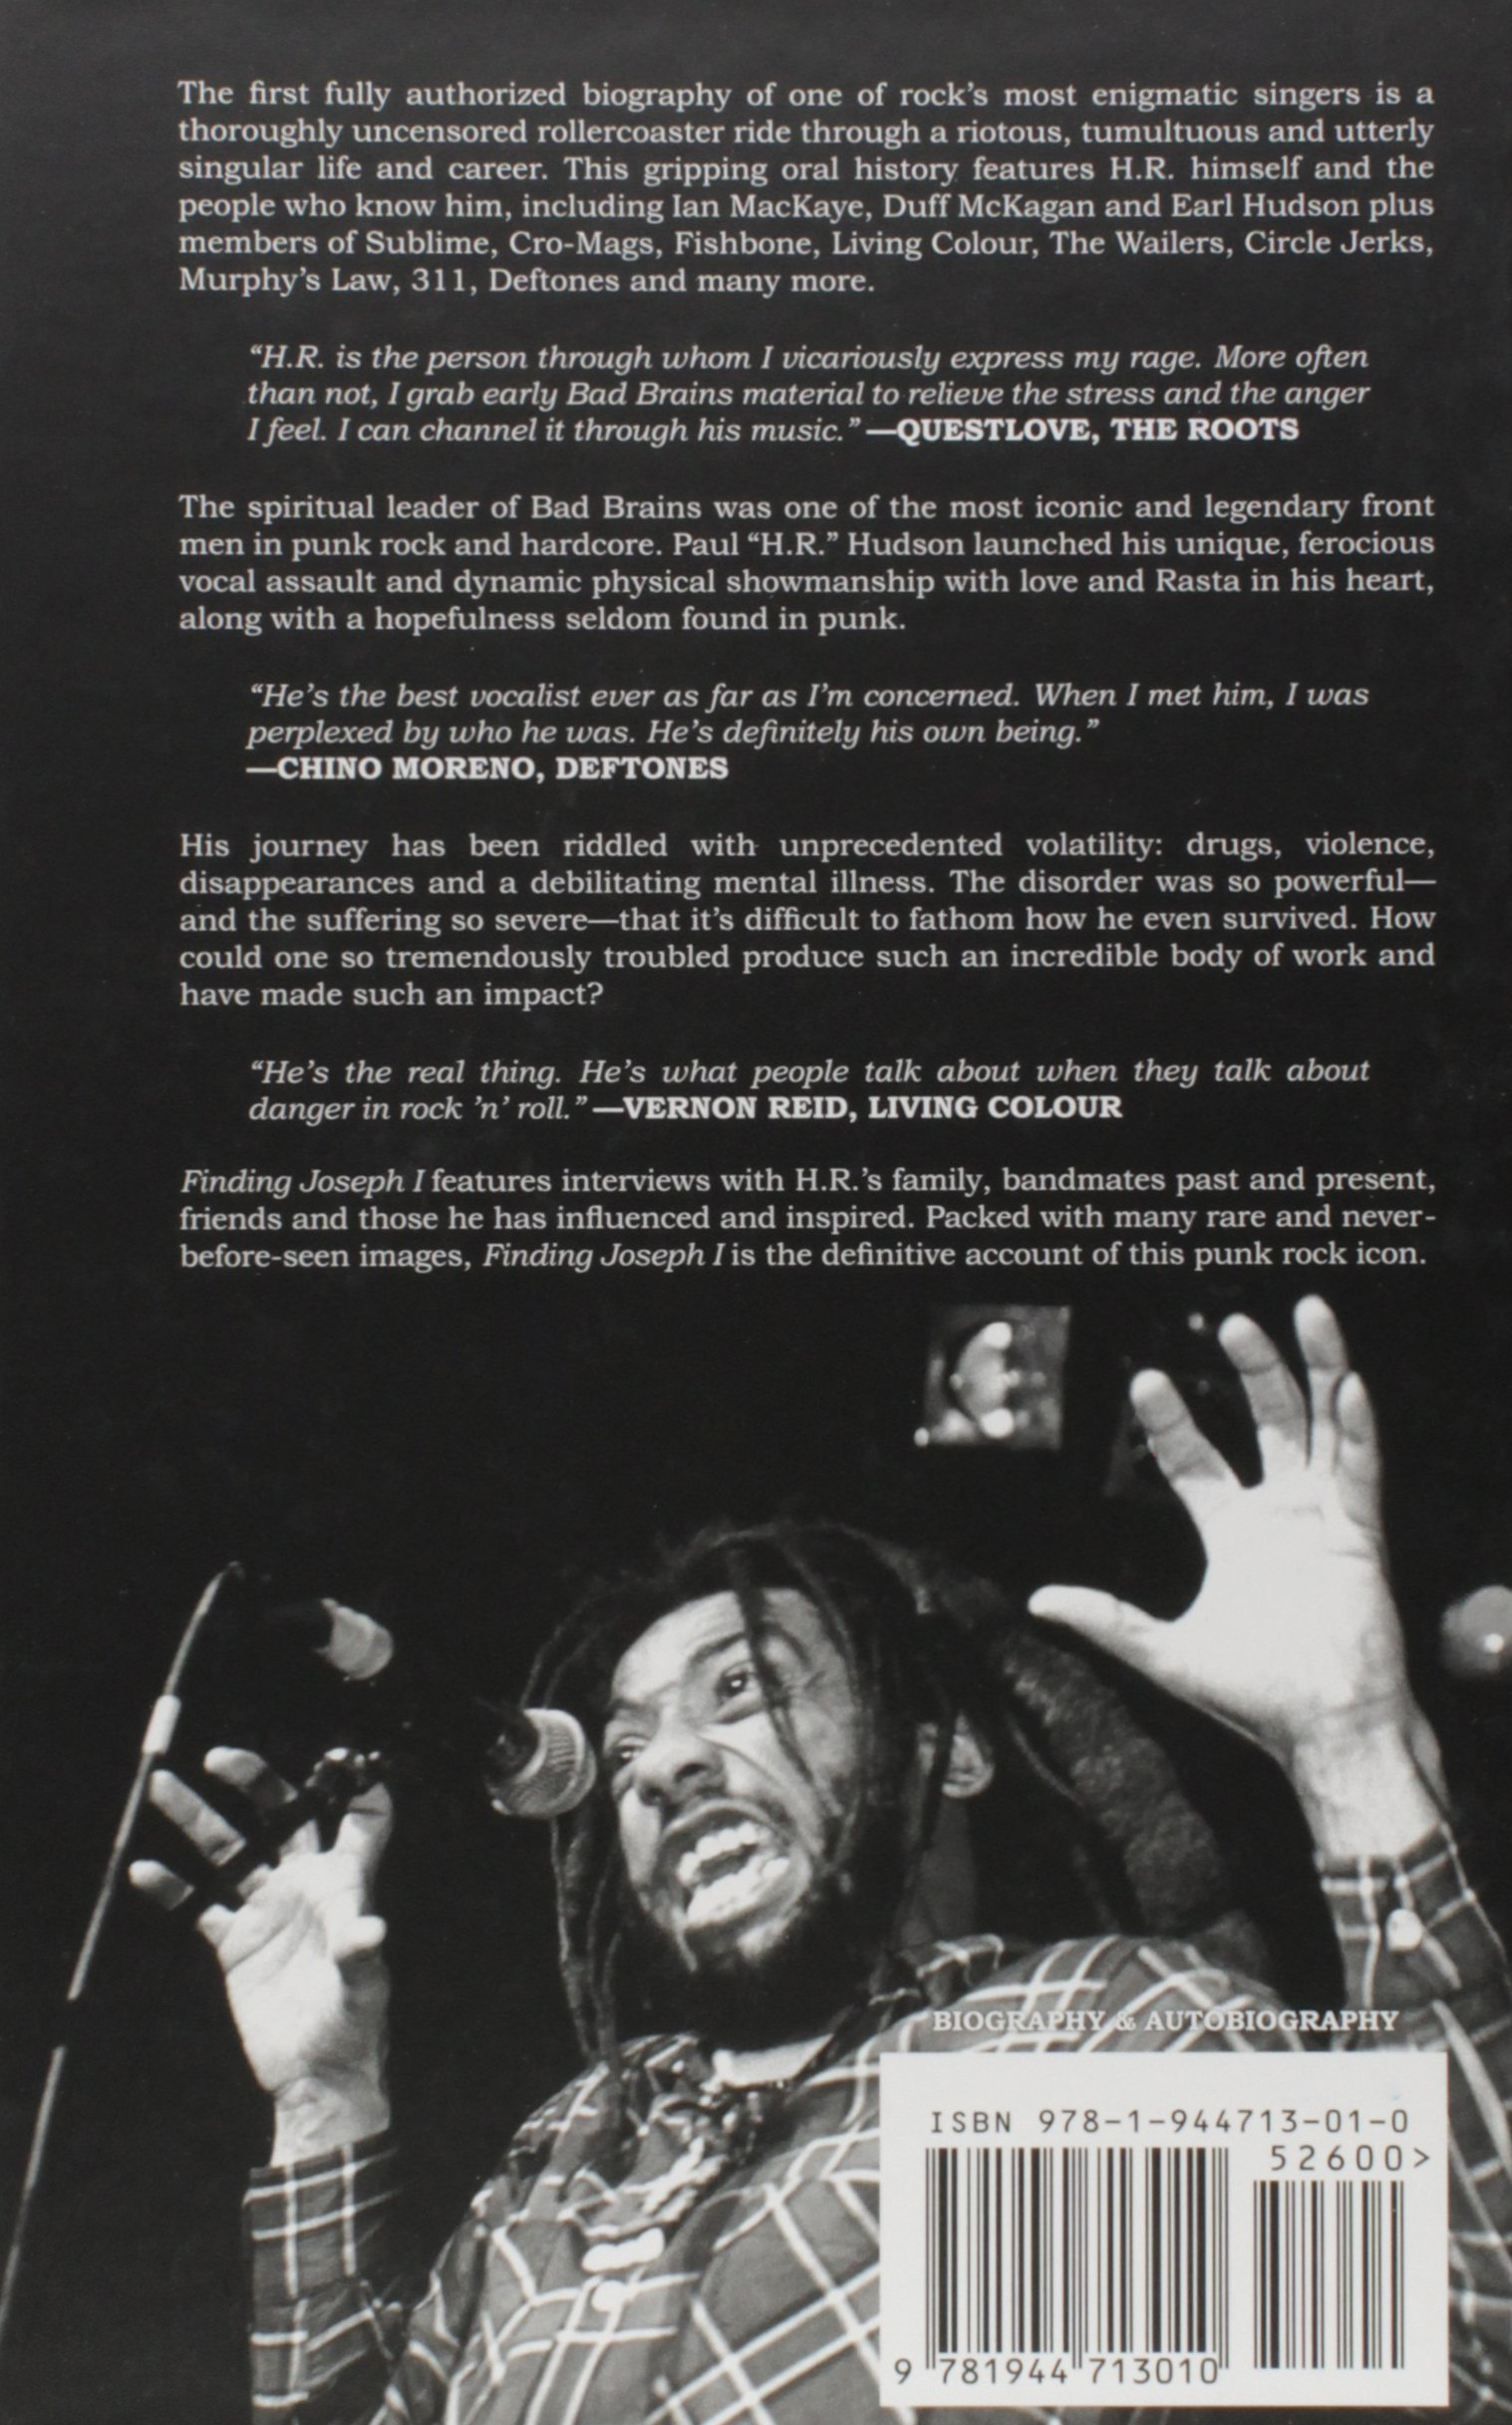 Finding joseph i an oral history of hr from bad brains howie finding joseph i an oral history of hr from bad brains howie abrams james lathos 9781944713010 amazon books fandeluxe Image collections